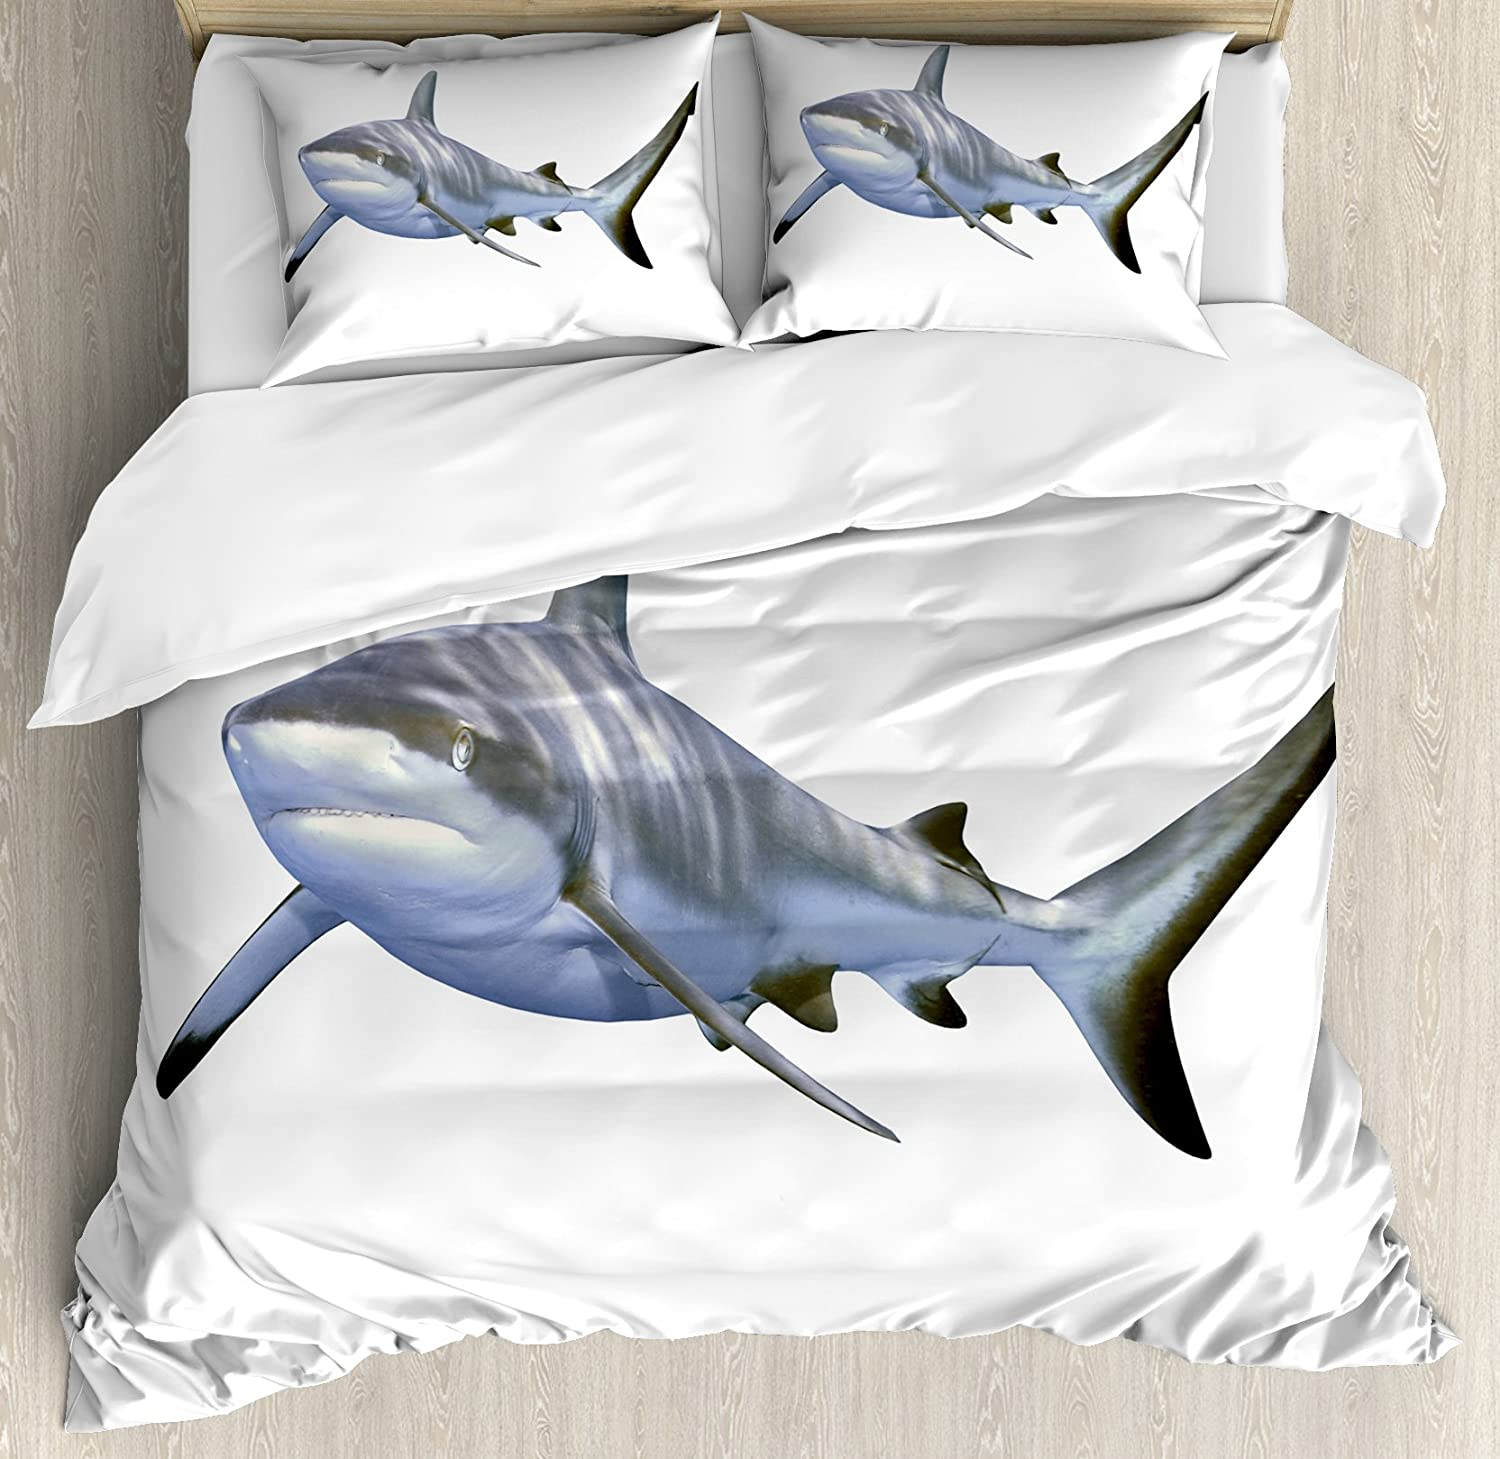 Ambesonne Shark Duvet Cover Set, Large Reef Shark Swimming Futuristic Computerrt Underwater Design, Decorative 3 Piece Bedding Set with 2 Pillow Shams, Queen Size, White Grey